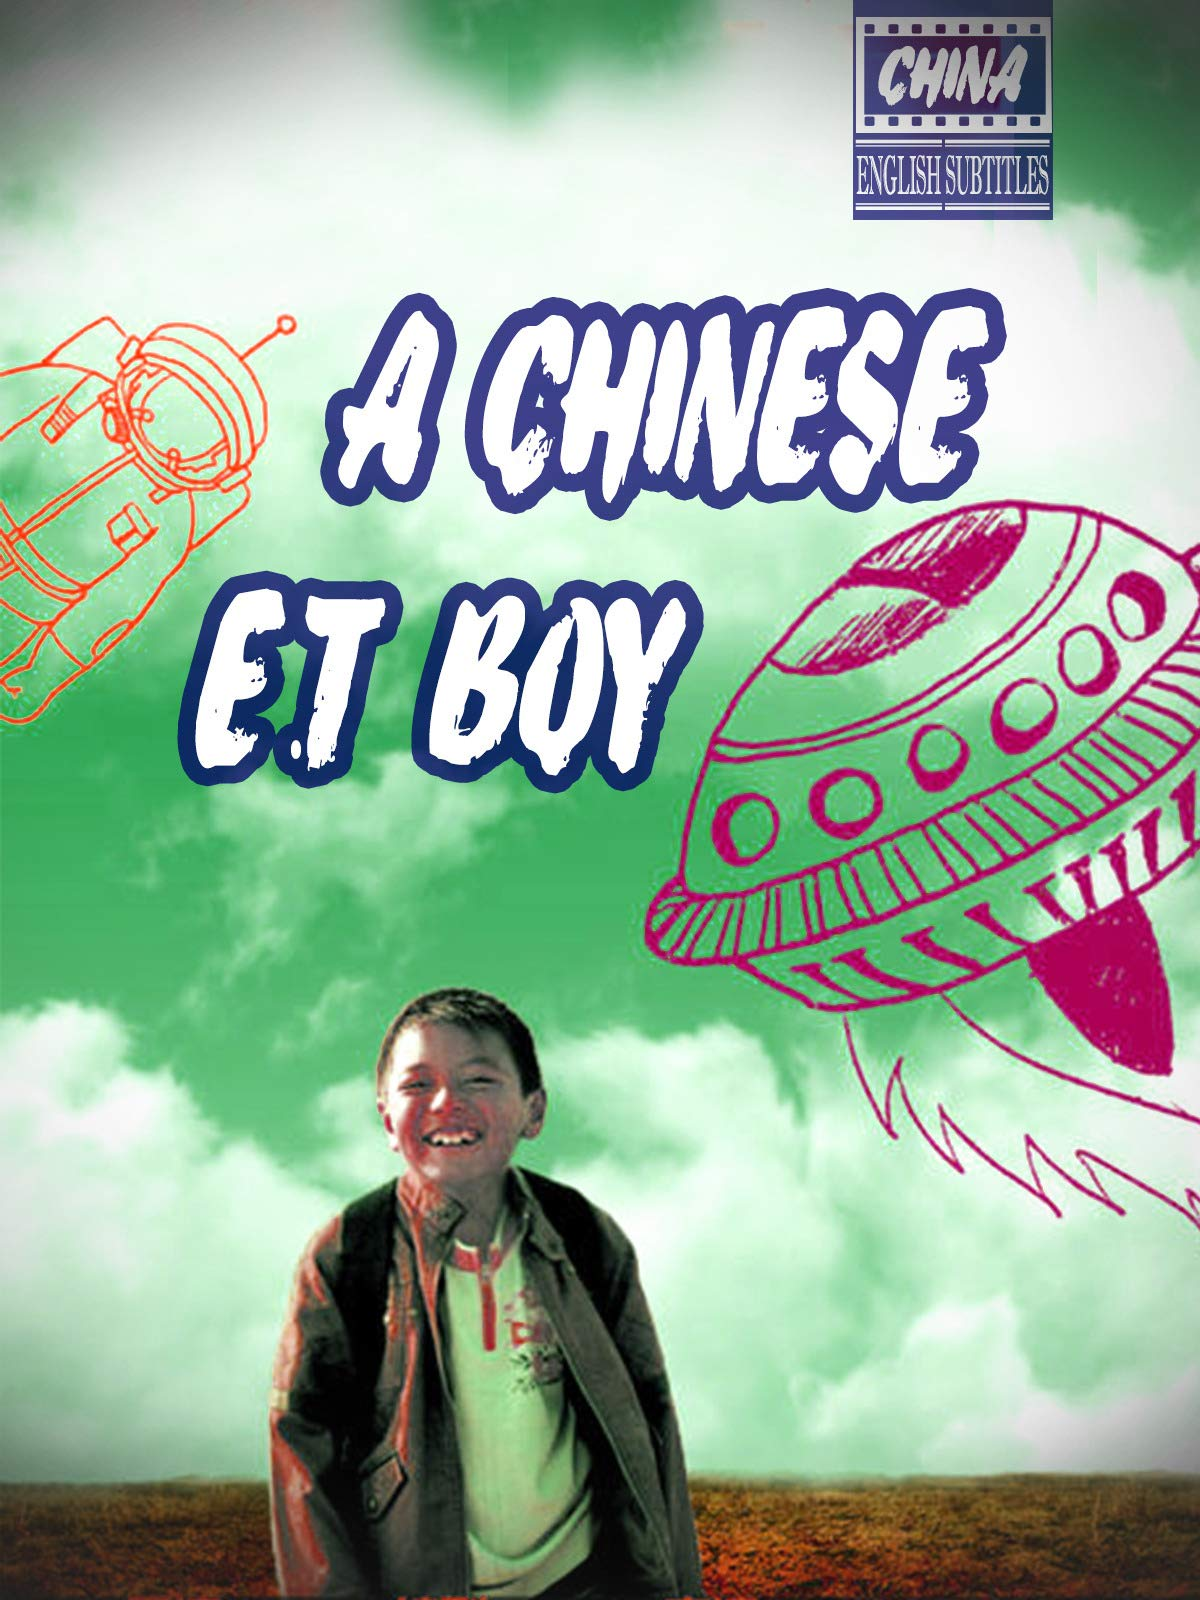 A Chinese E.T Boy (english subtitles) China